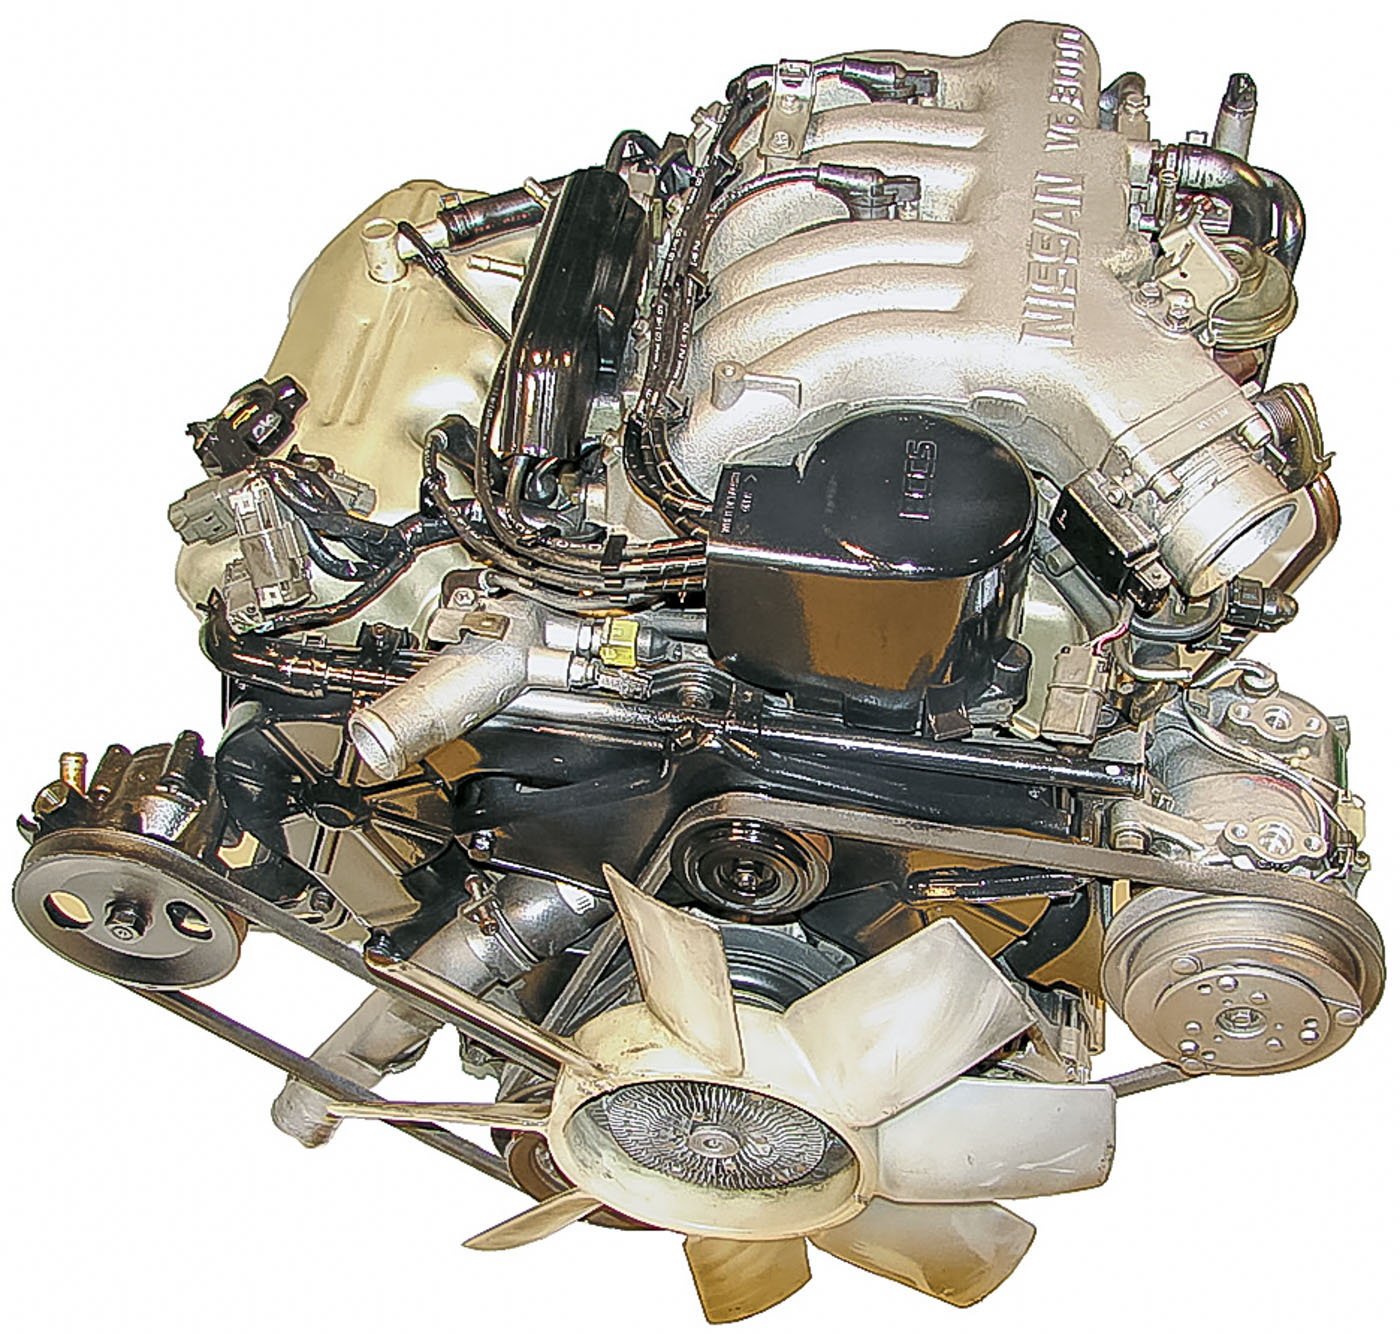 Nissan Infiniti Vg Engine on 2000 Dodge Dakota 4x4